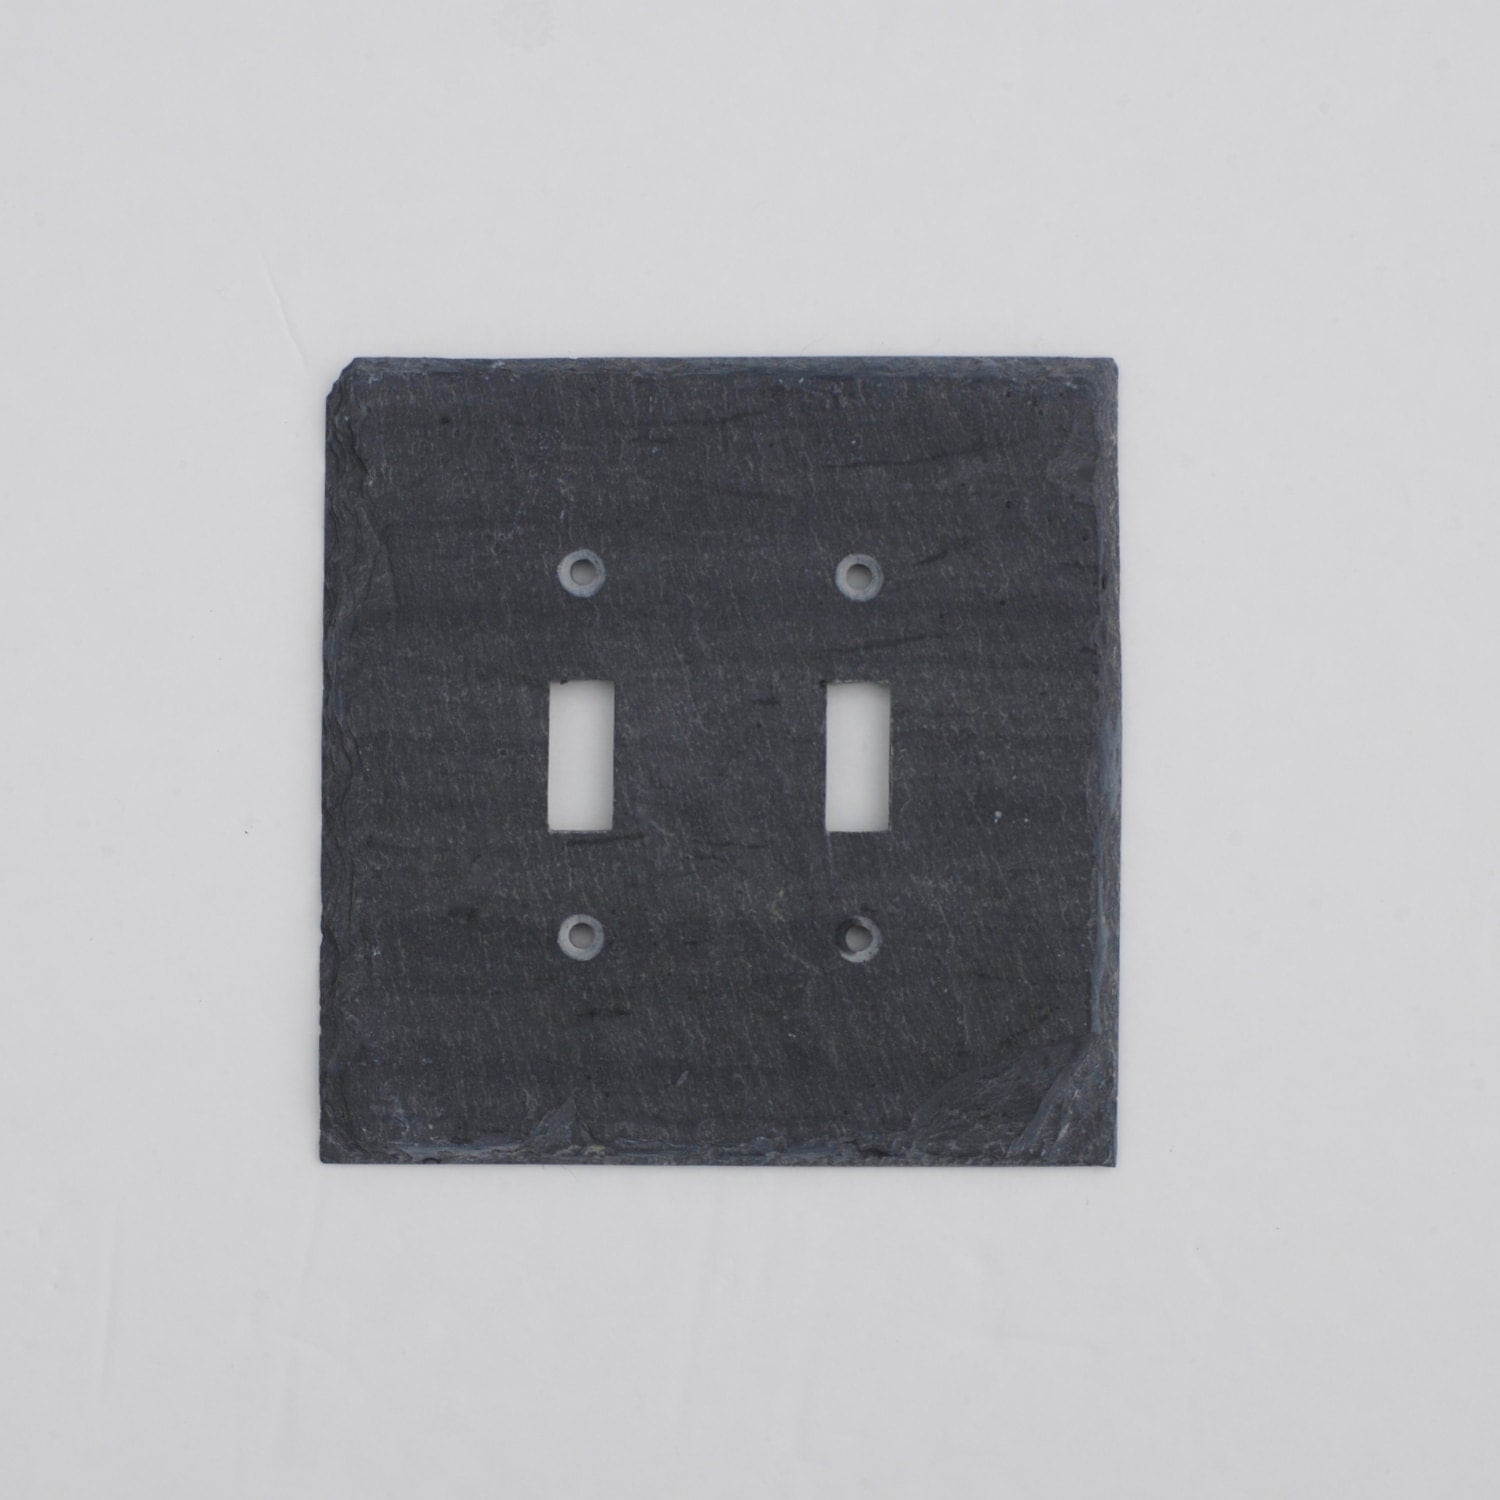 Decorative double light switch cover switch plate wall for Decor light switch